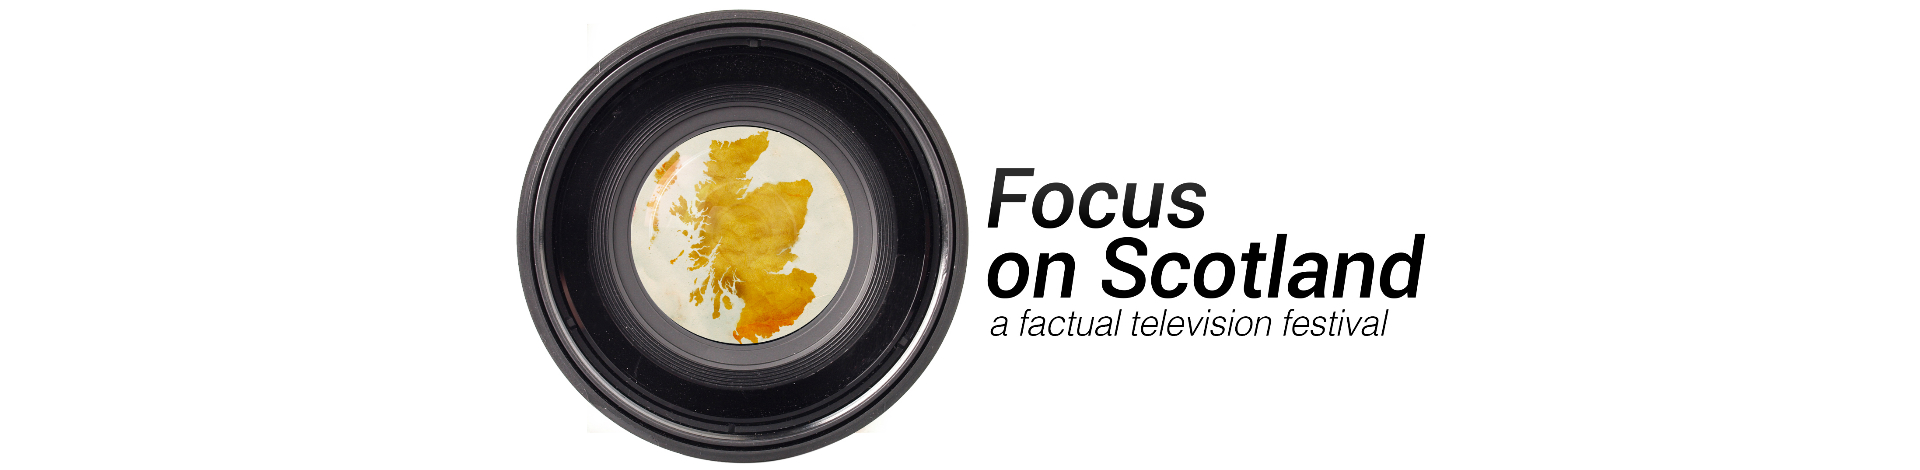 Focus on Scotland logo